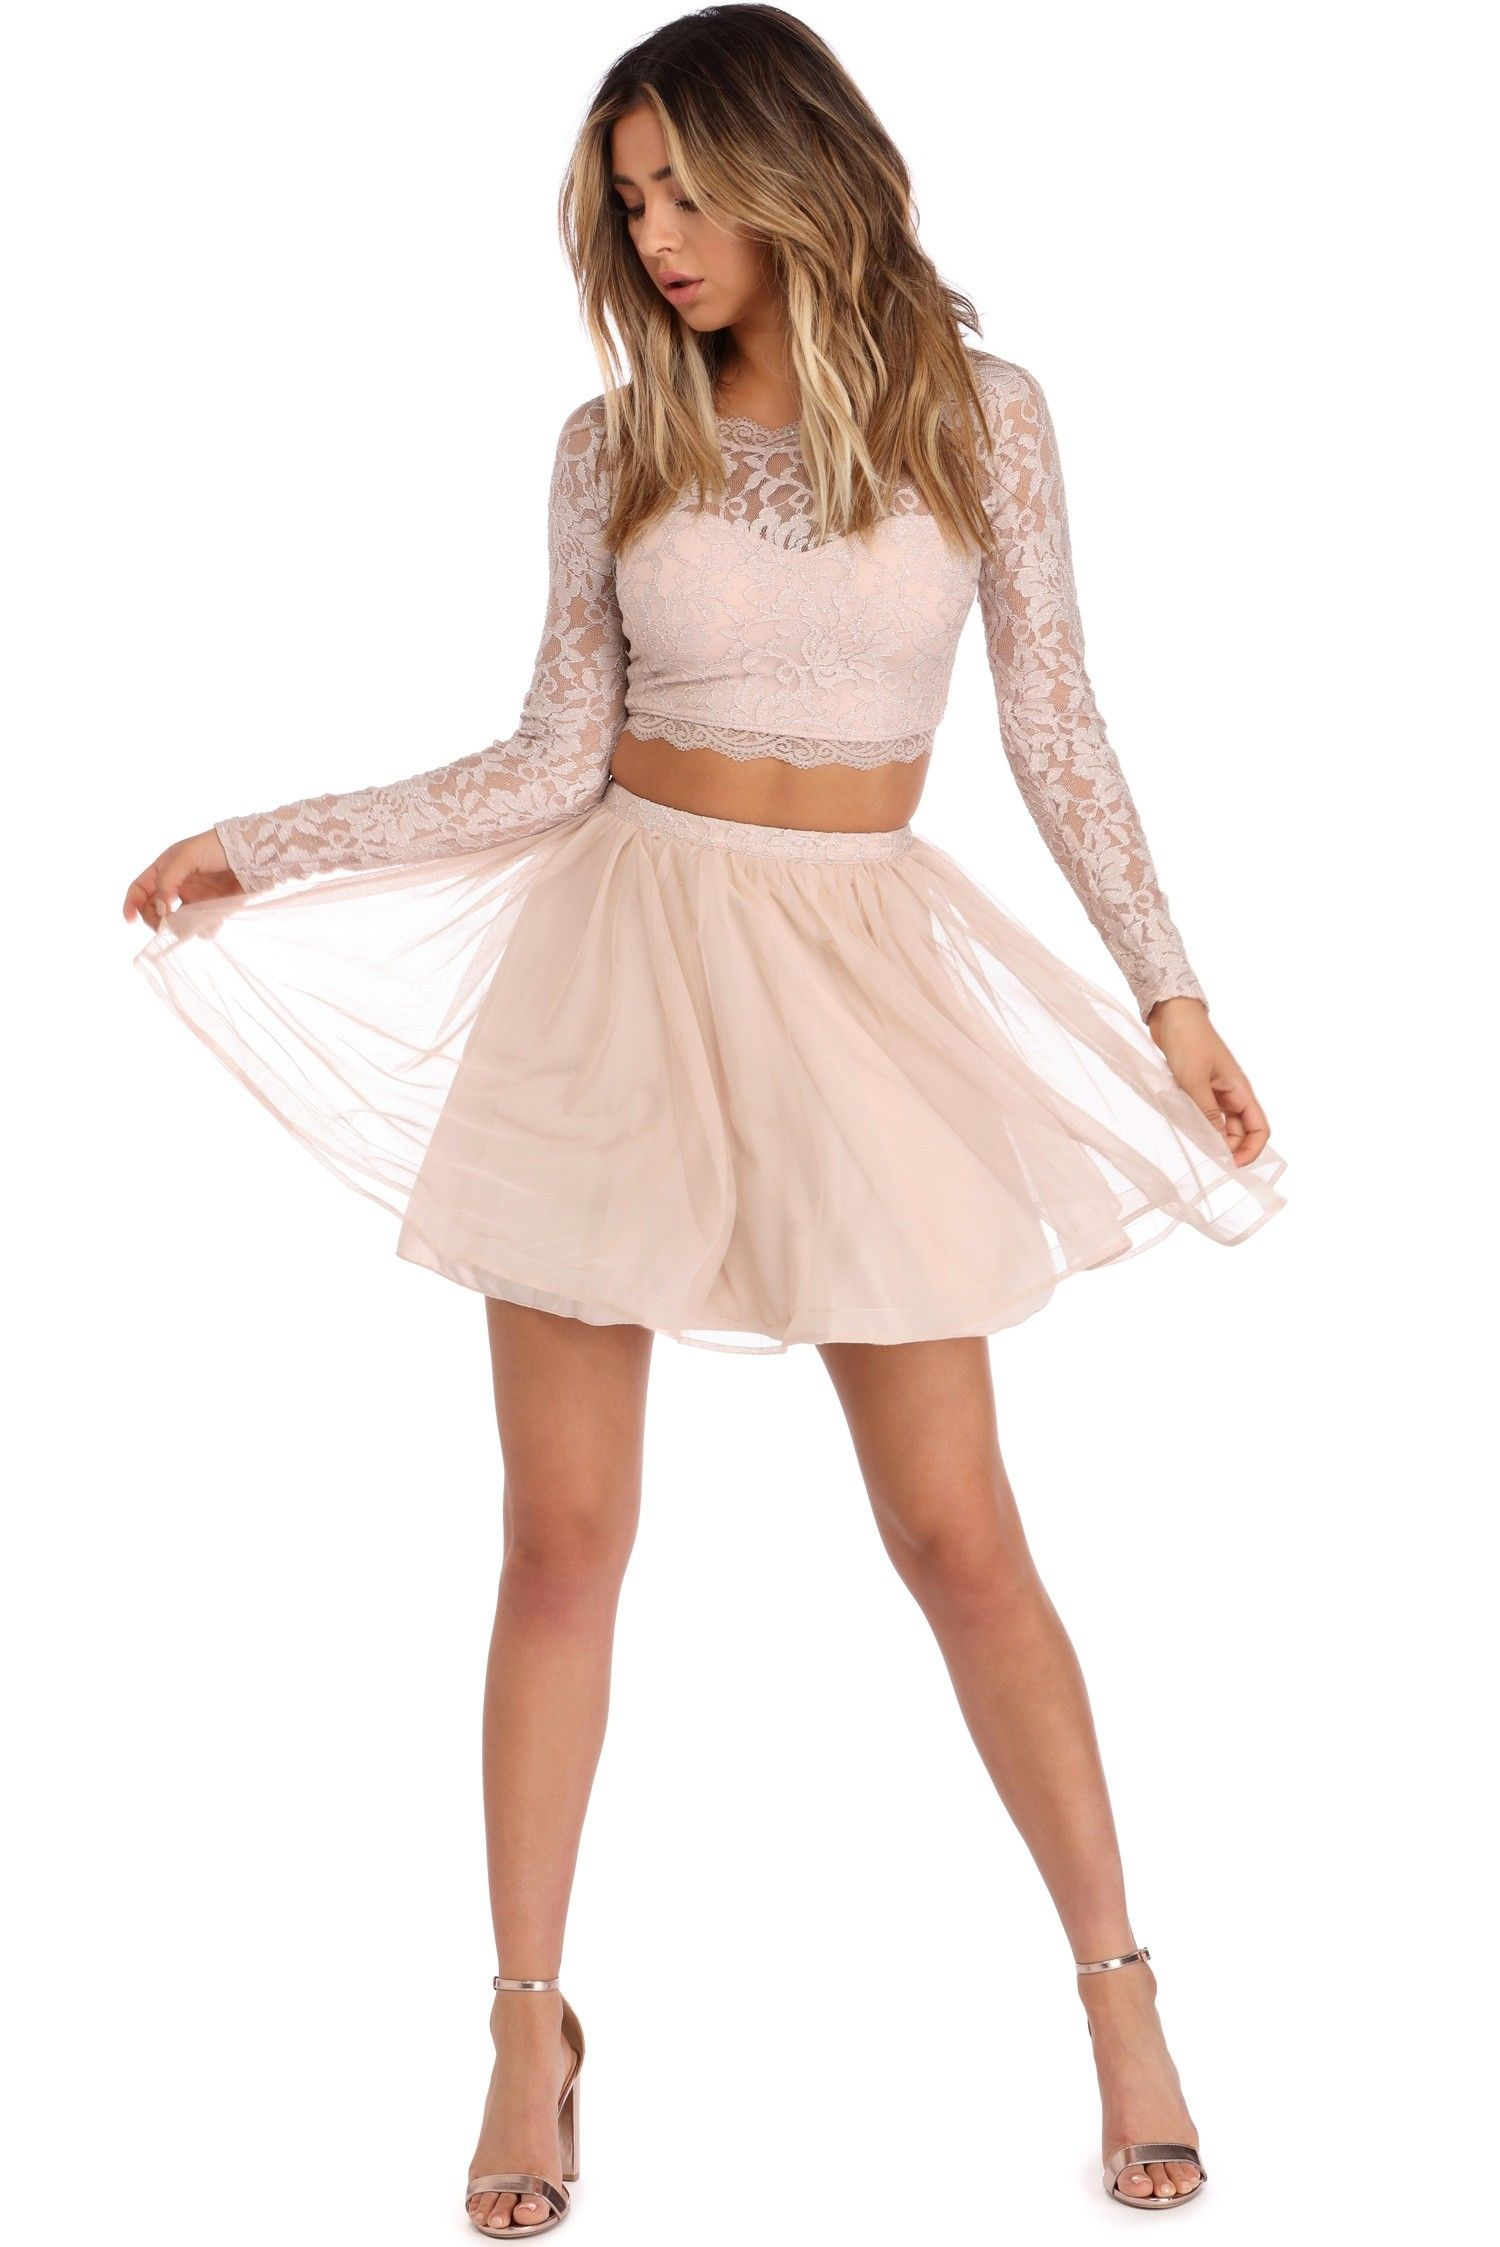 Emily Natural Lace And Mesh Two Piece Dress Dresses Piece Dress Two Piece Dress [ 2247 x 1500 Pixel ]